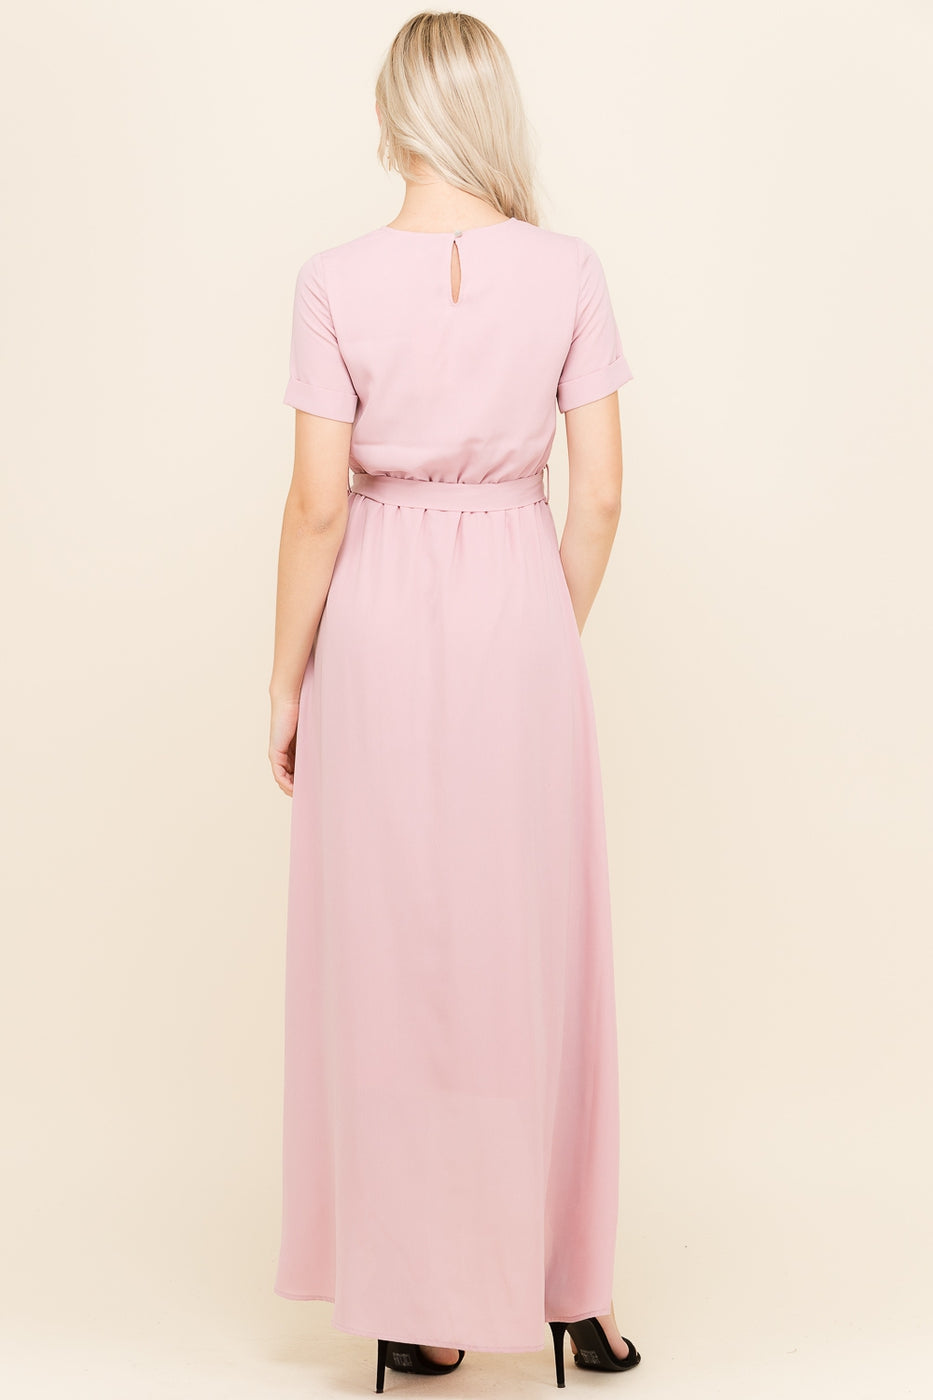 Mia Short Sleeve Wrap Dress Side With Waist Tie In Mauve Siin Bees